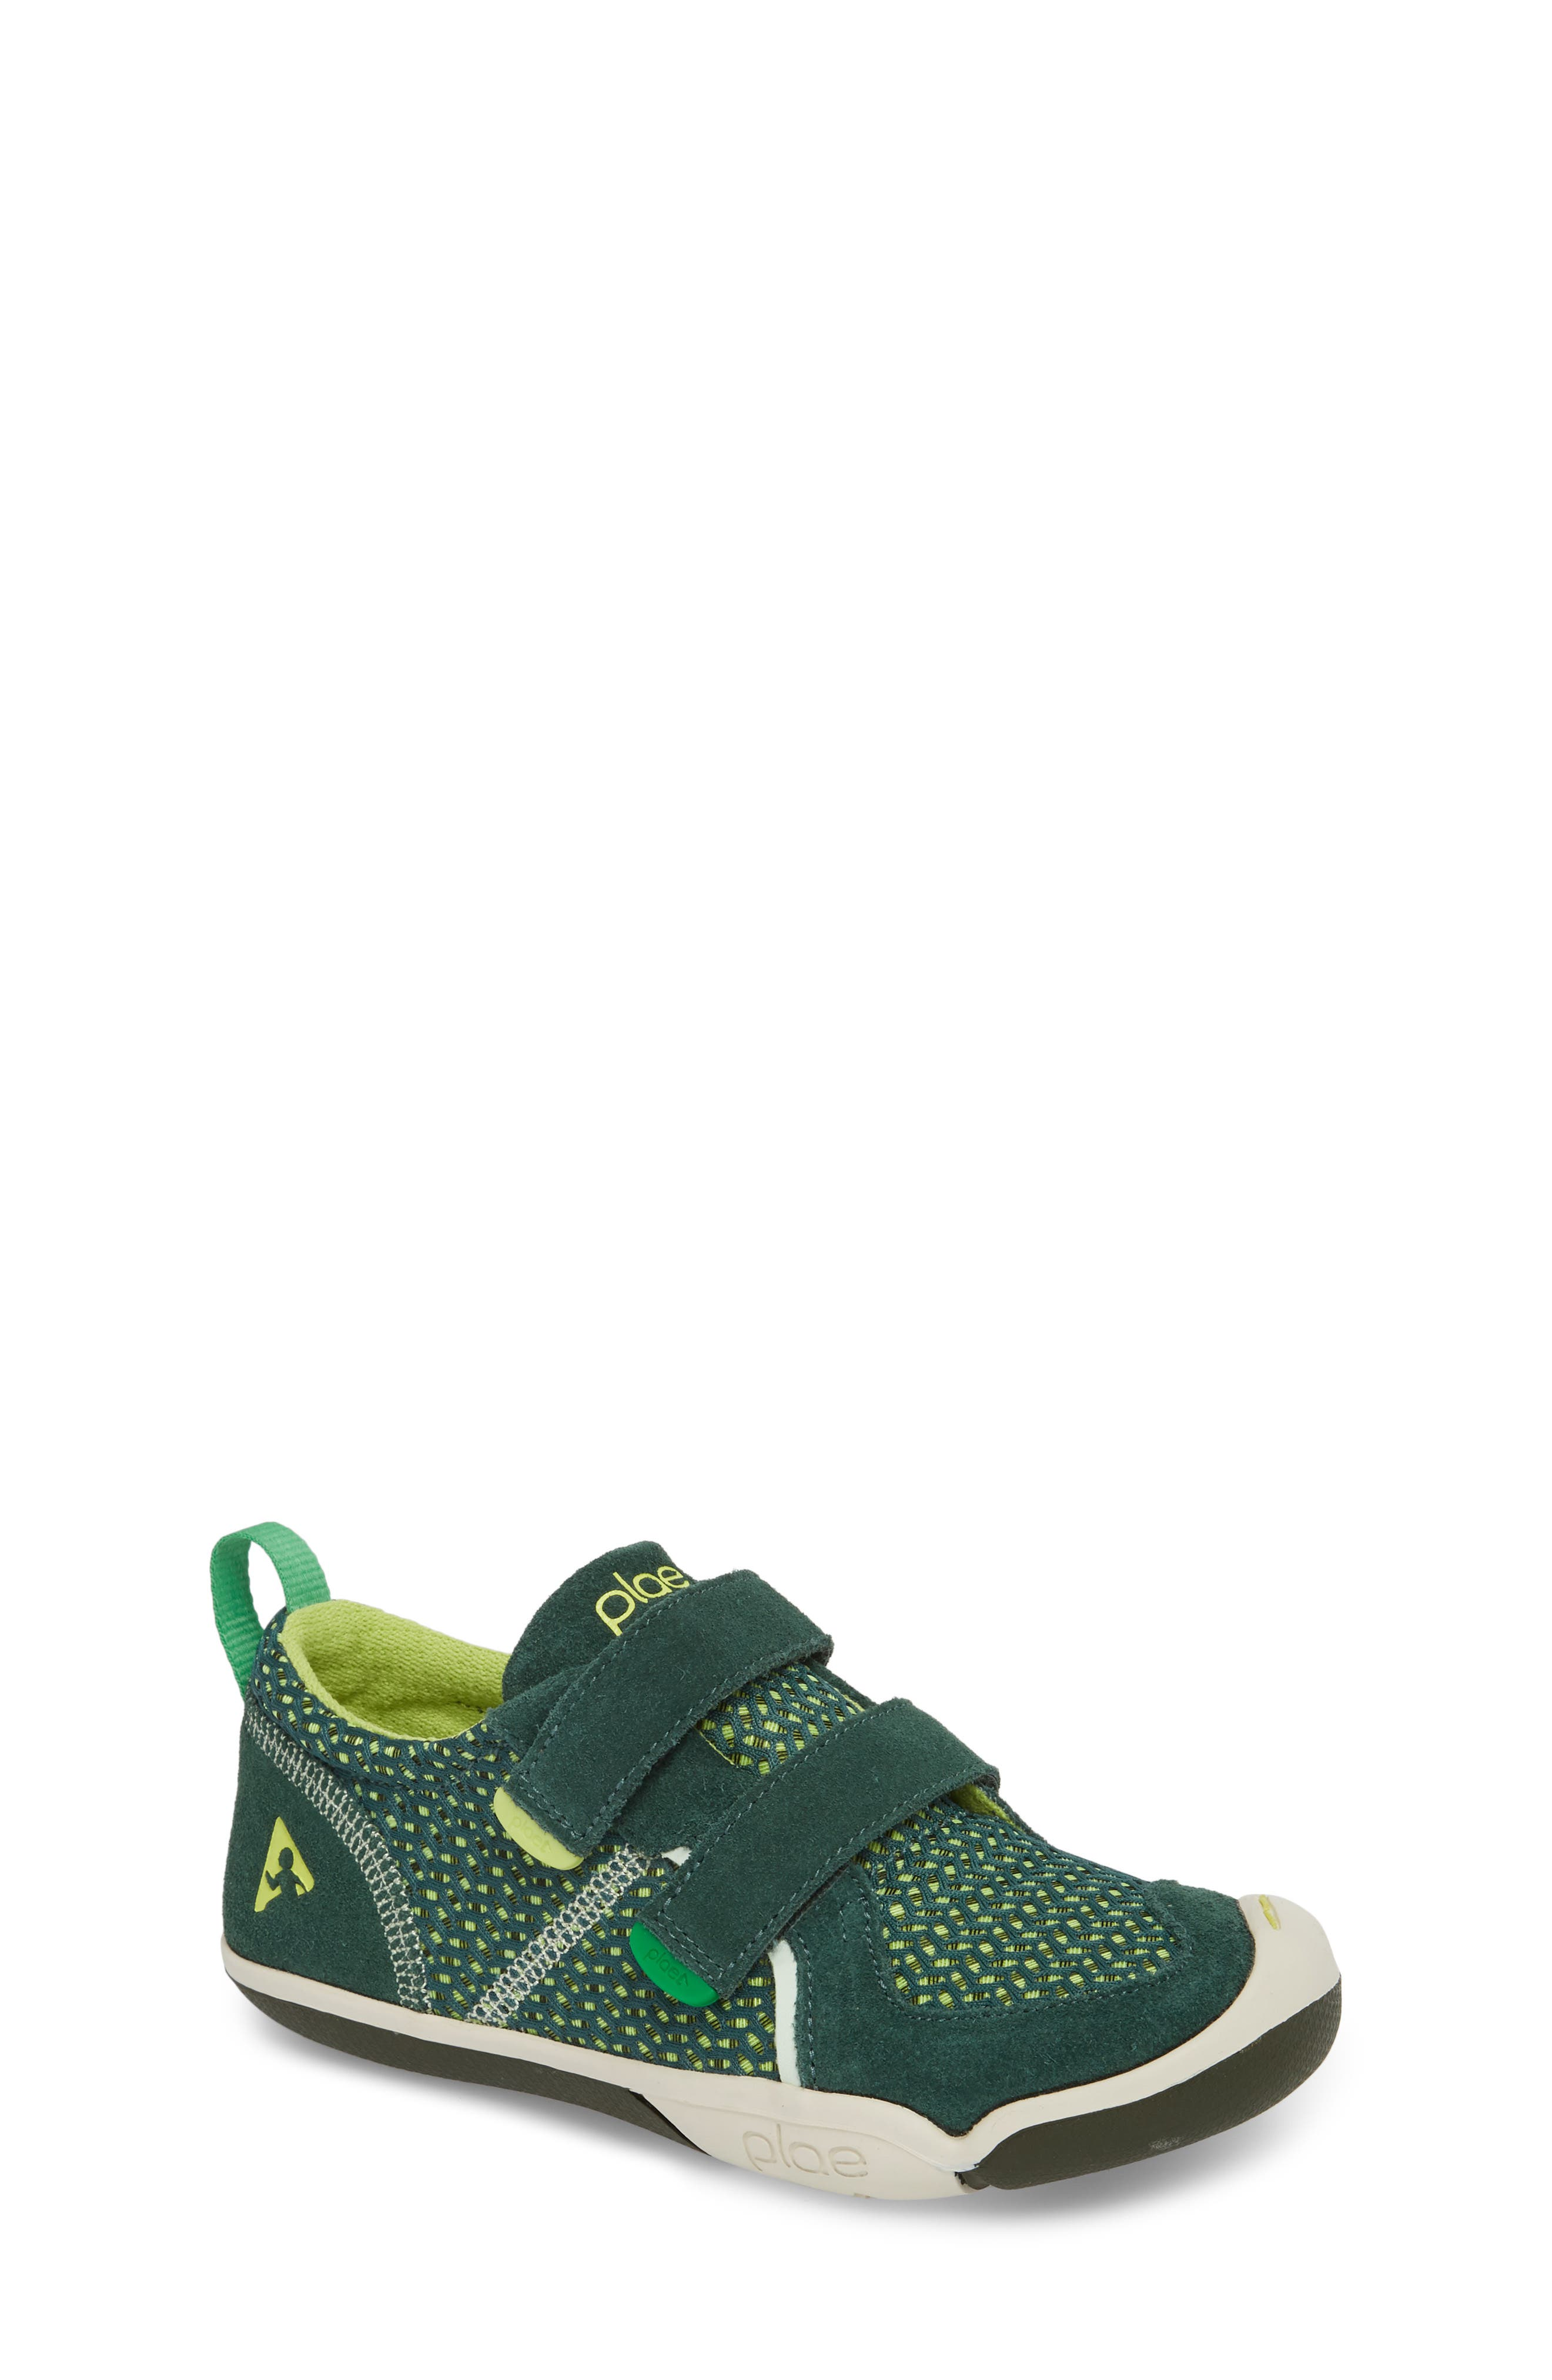 PLAE, Ty Sneaker, Main thumbnail 1, color, AMAZON GREEN